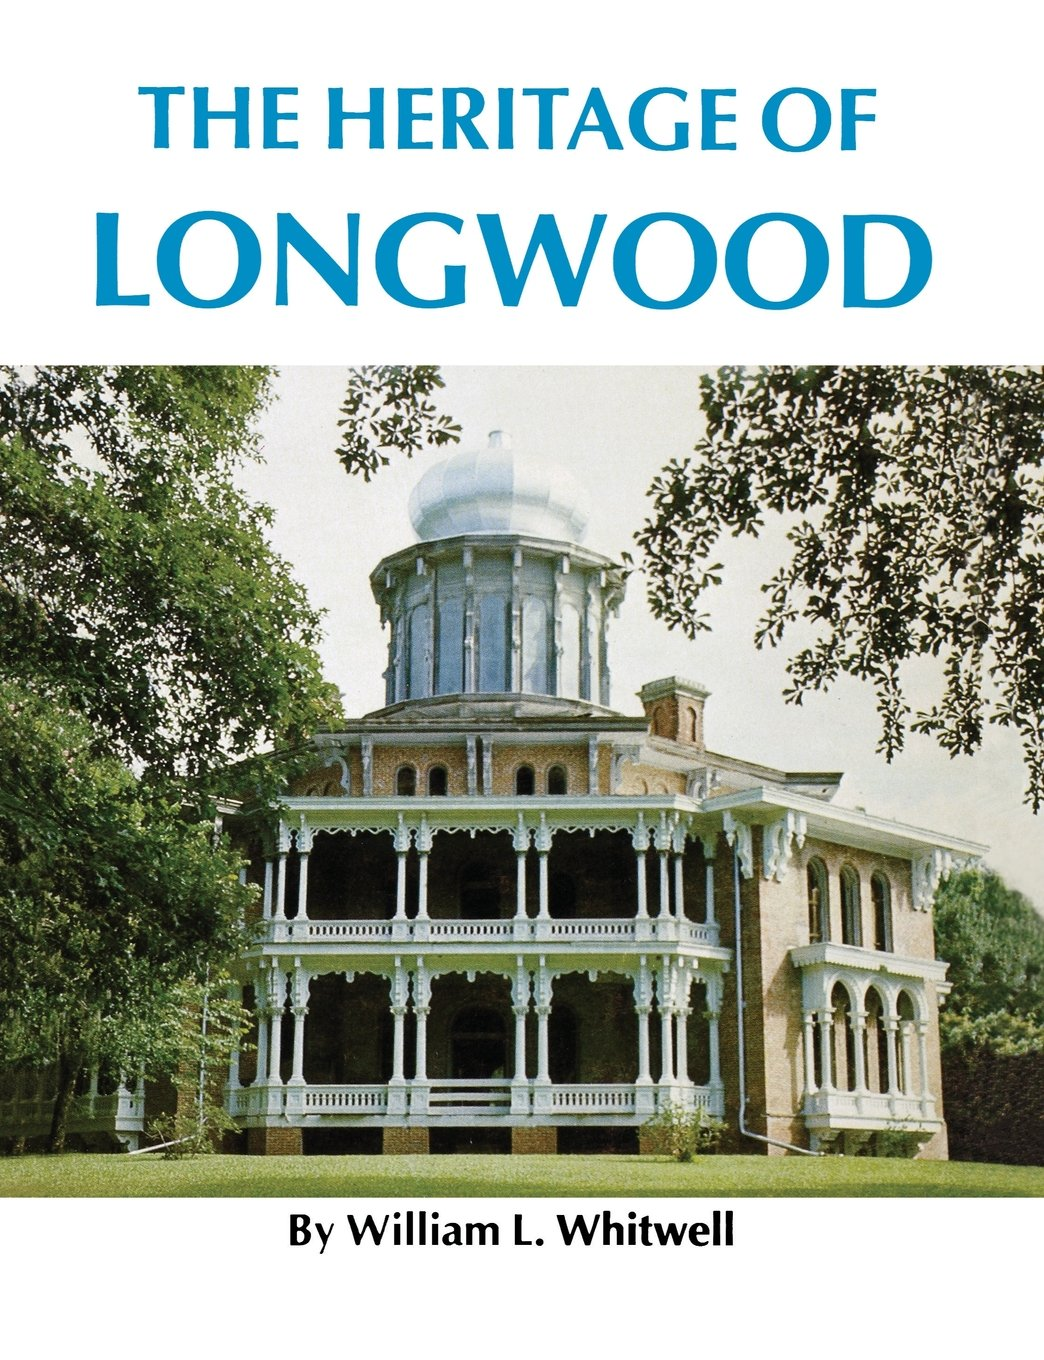 The Heritage of Longwood